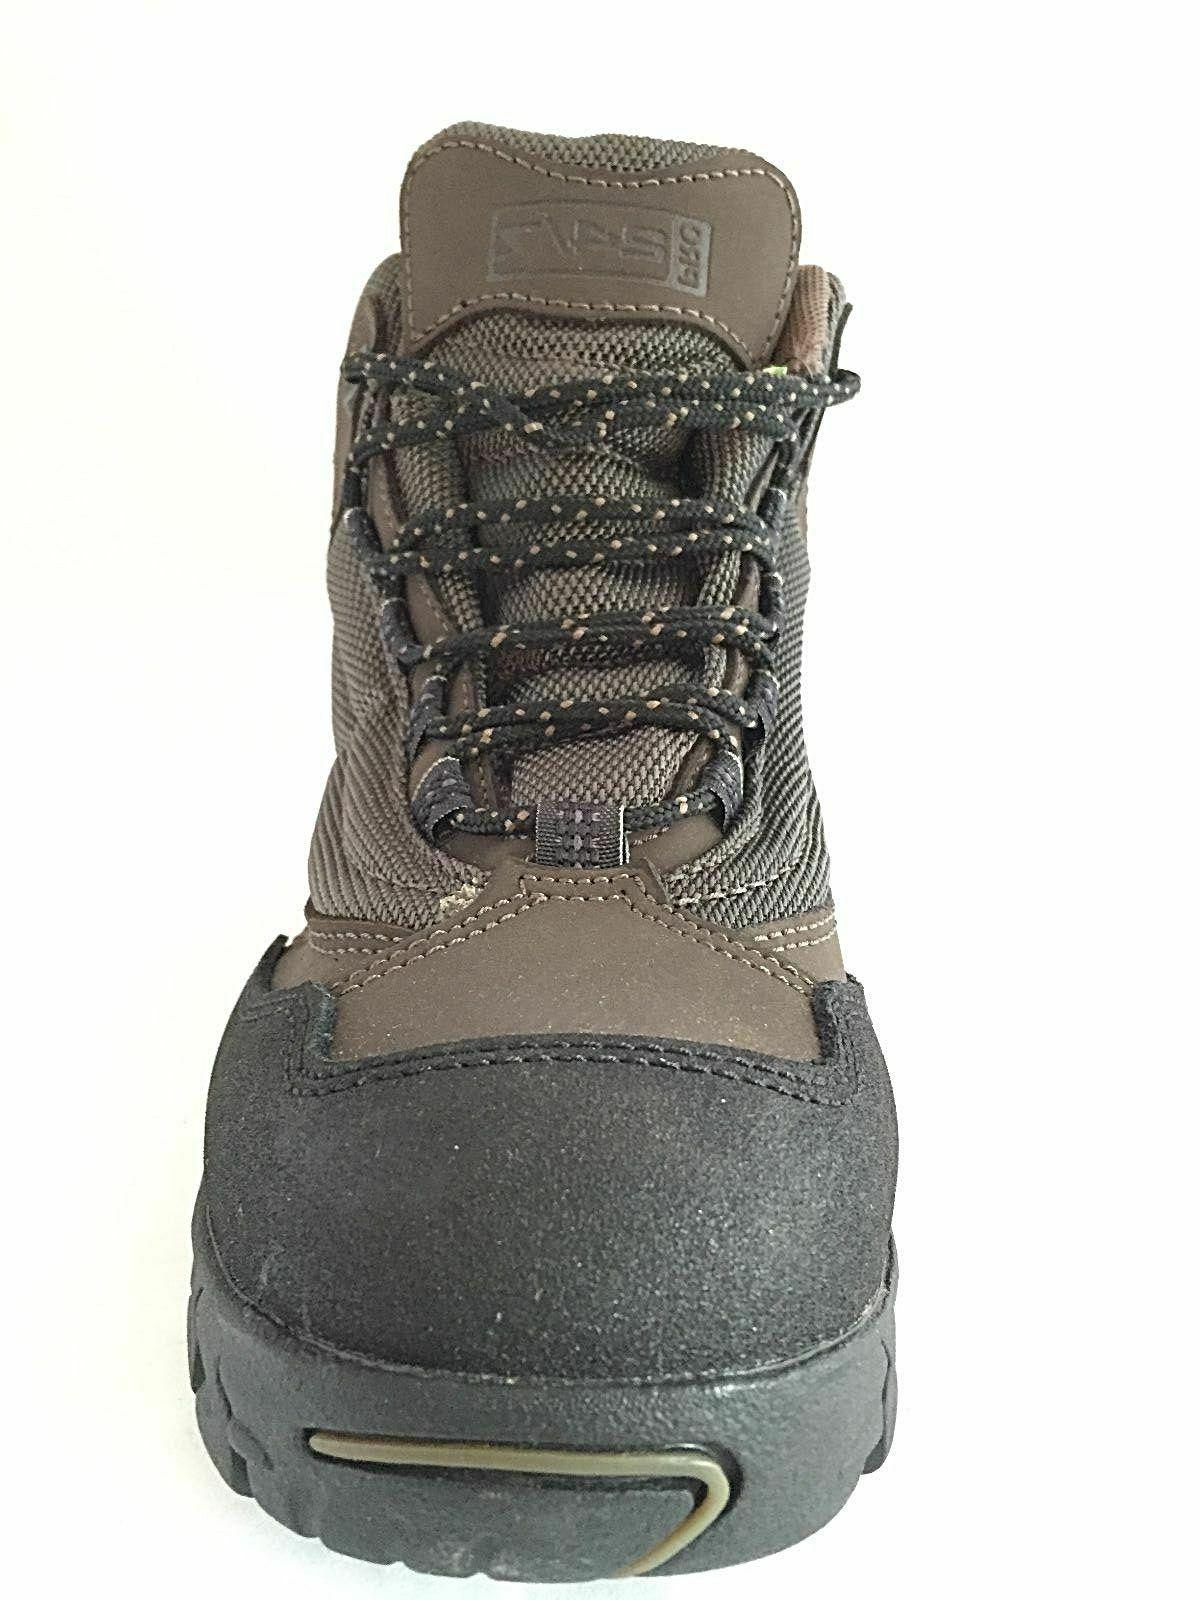 Timberland Expertise Hiker Boots Size